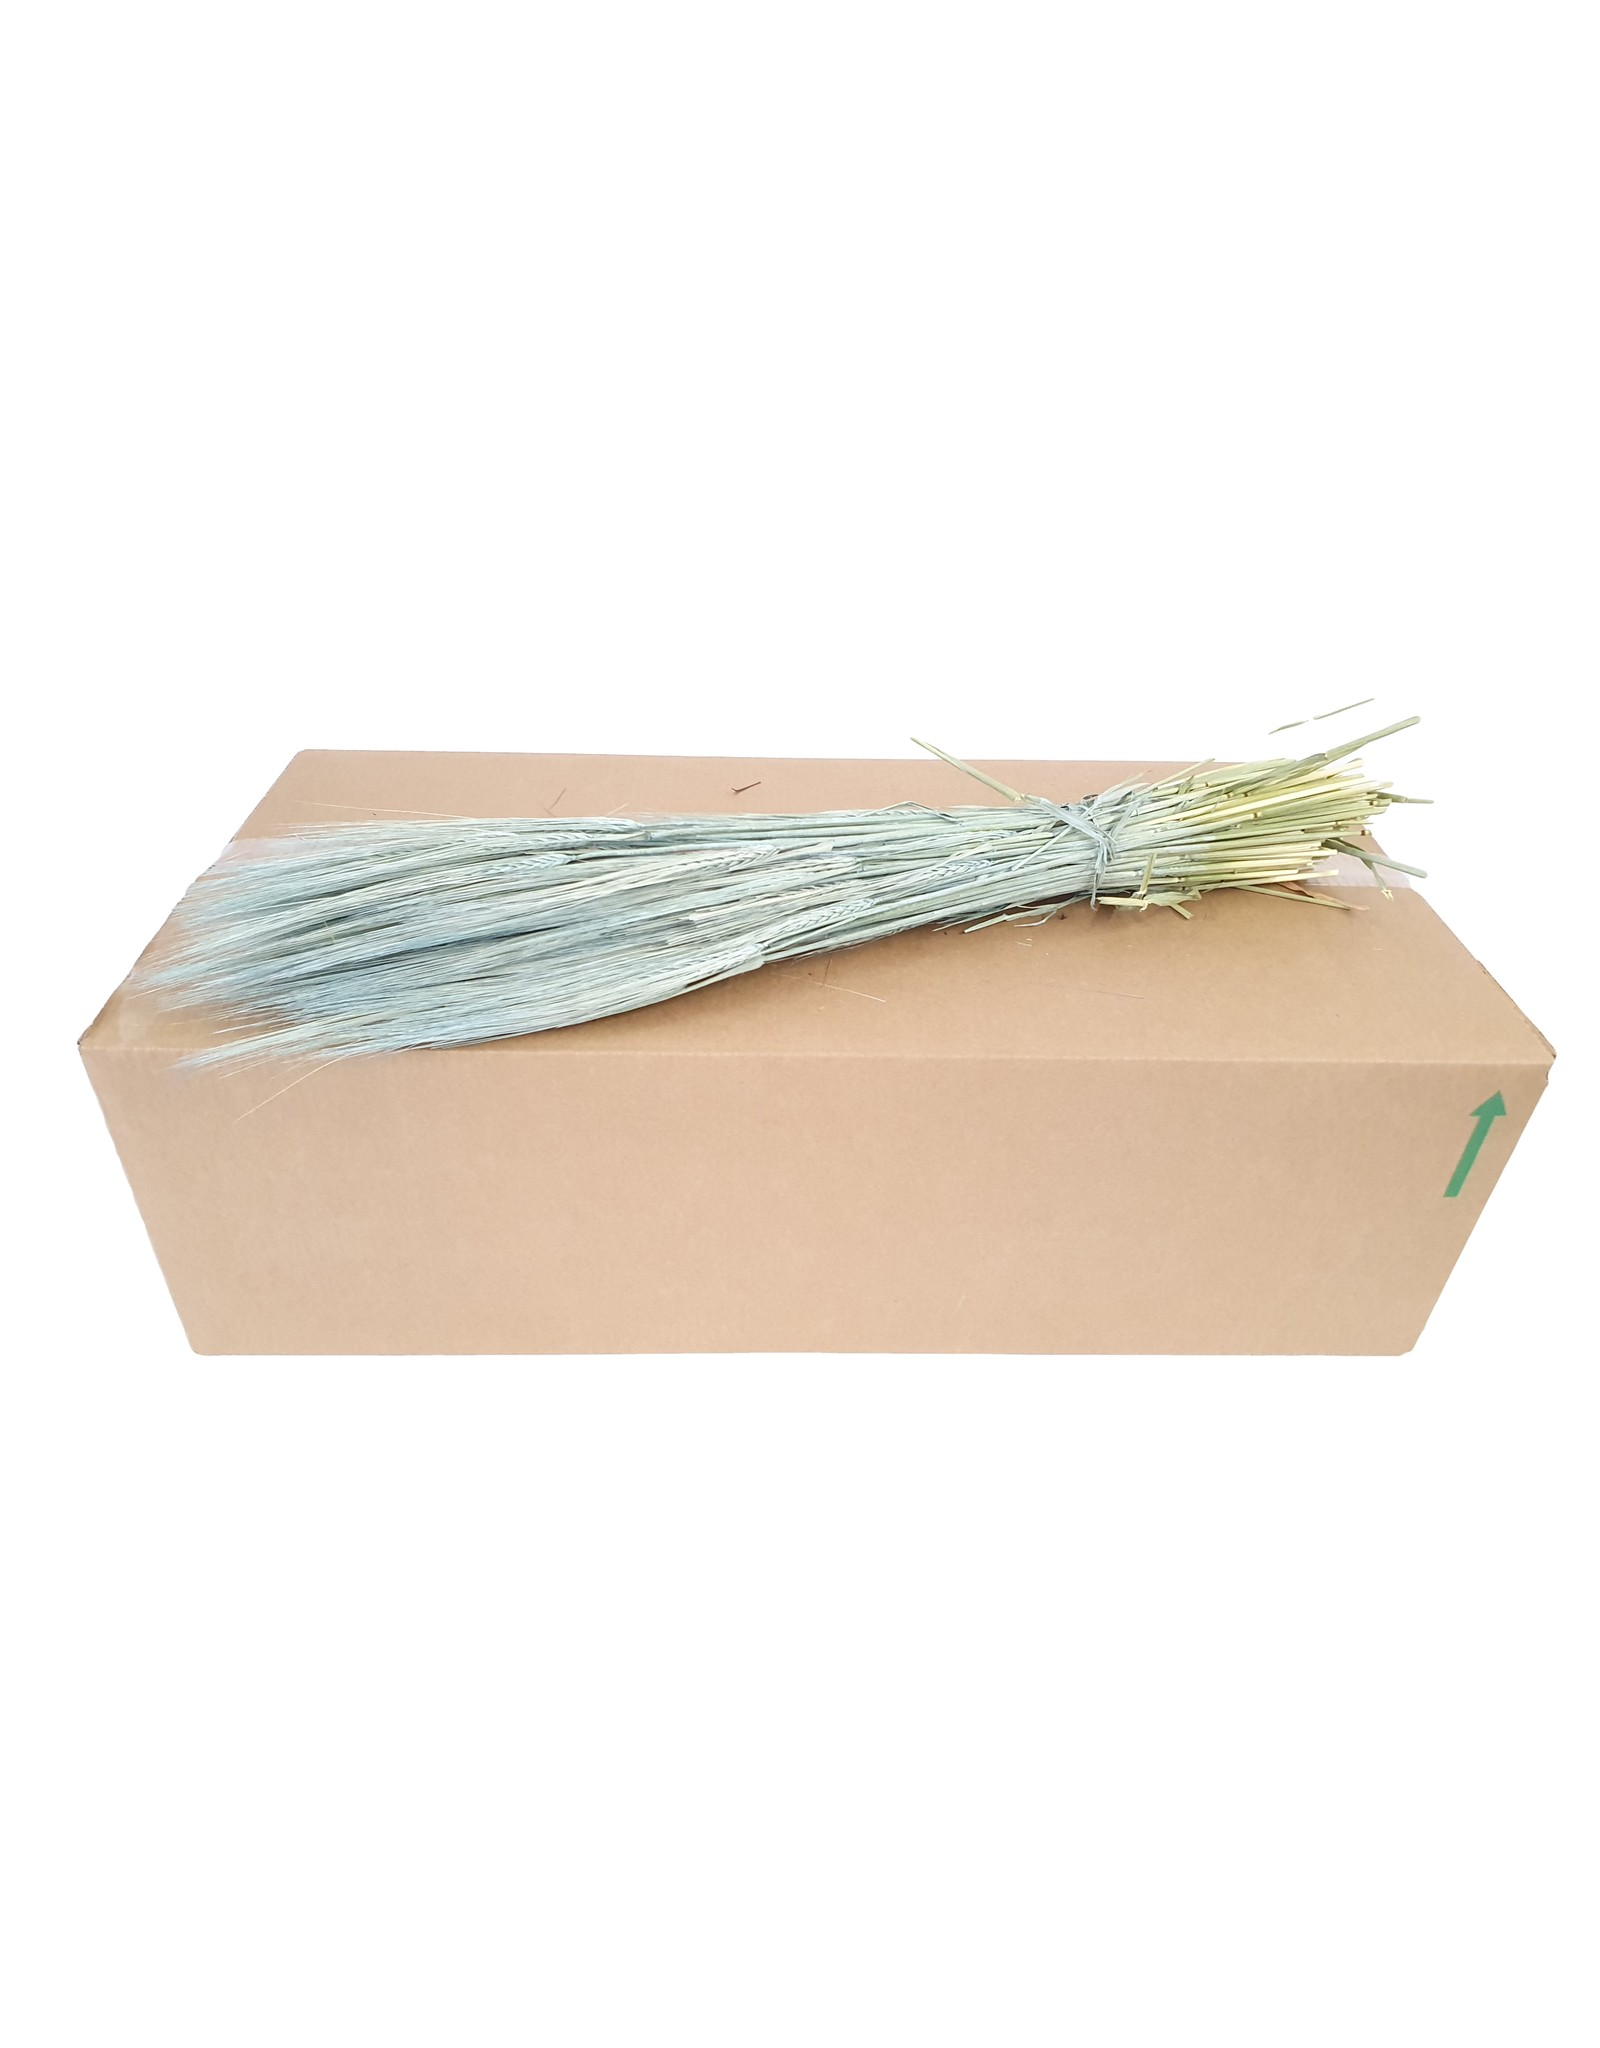 Hordeum per bunch Frosted Light Blue x 25